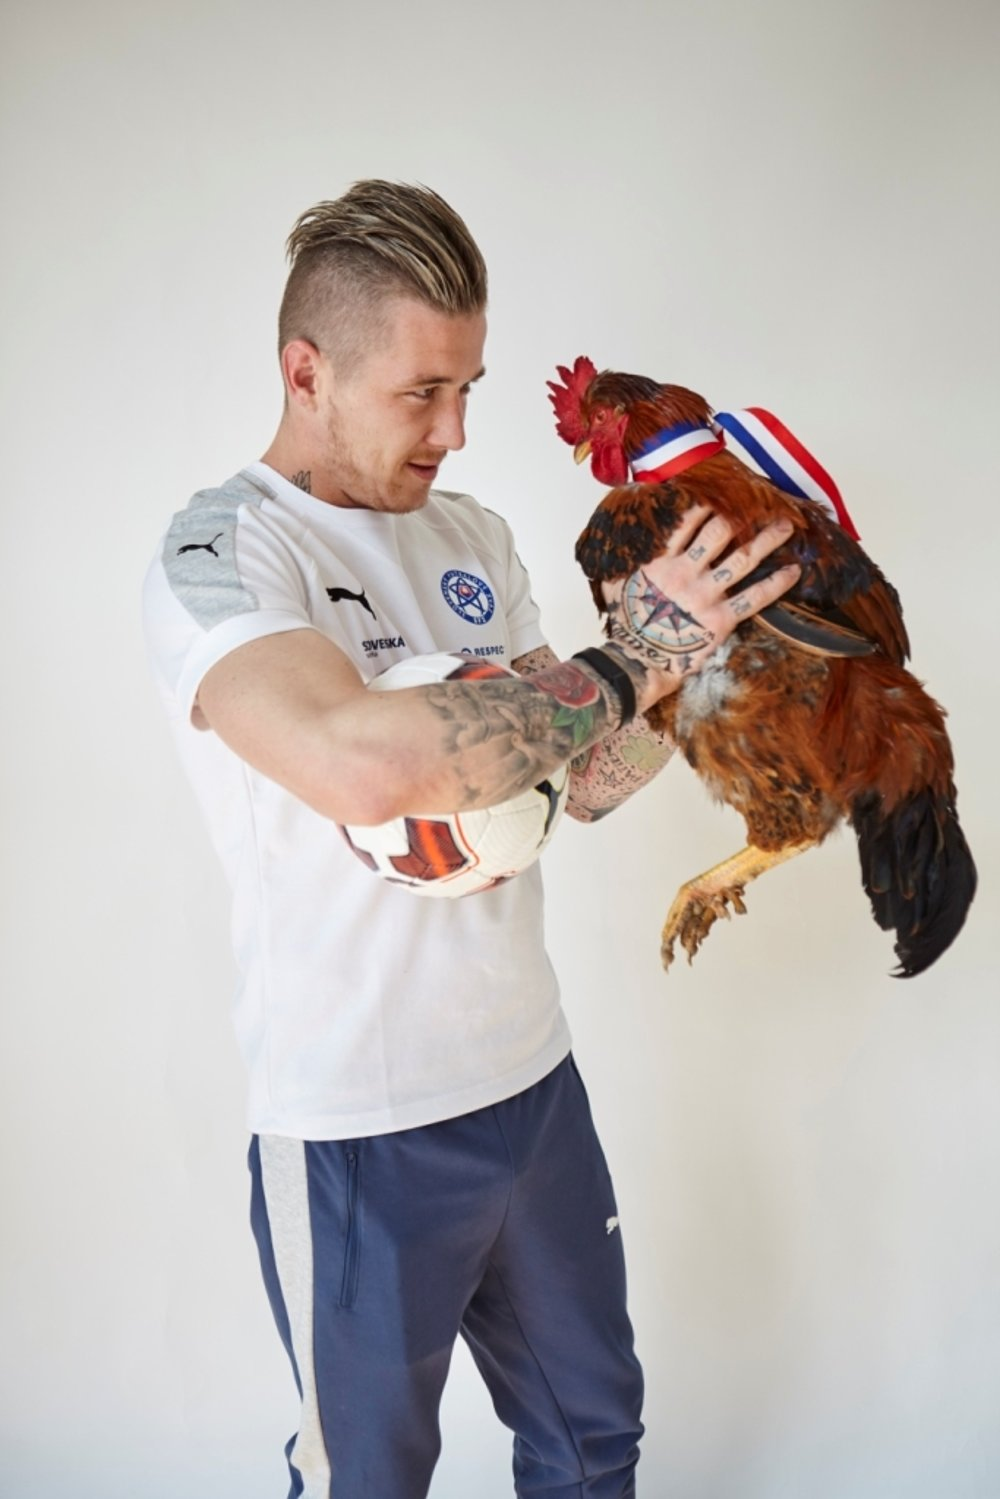 Juraj Kucka had no problems with the bird.